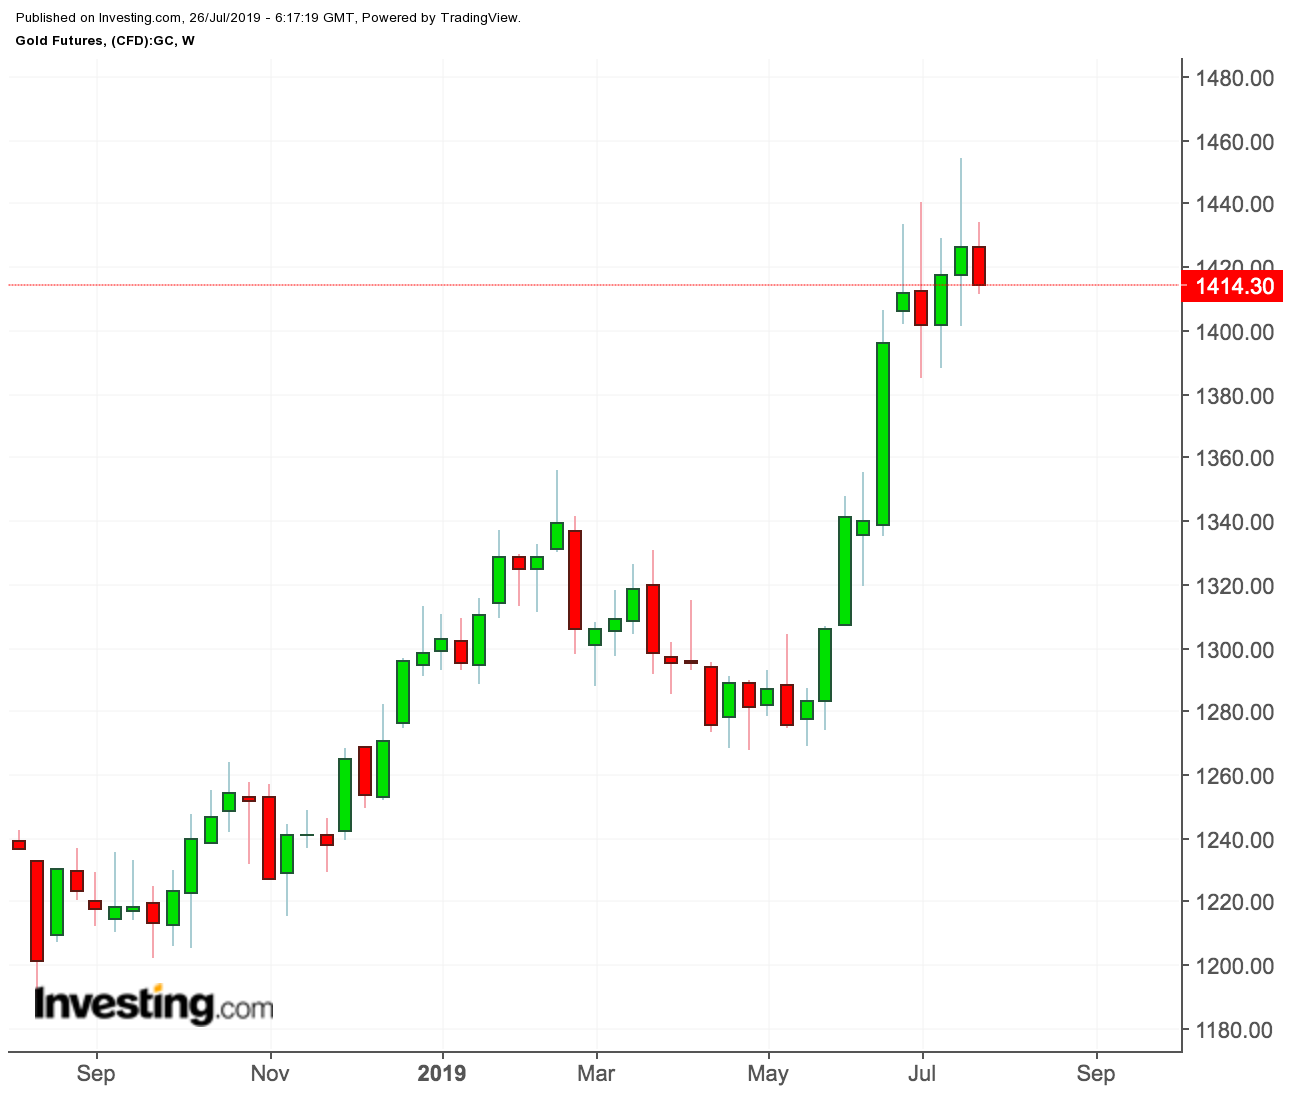 Gold Futures, weekly price chart